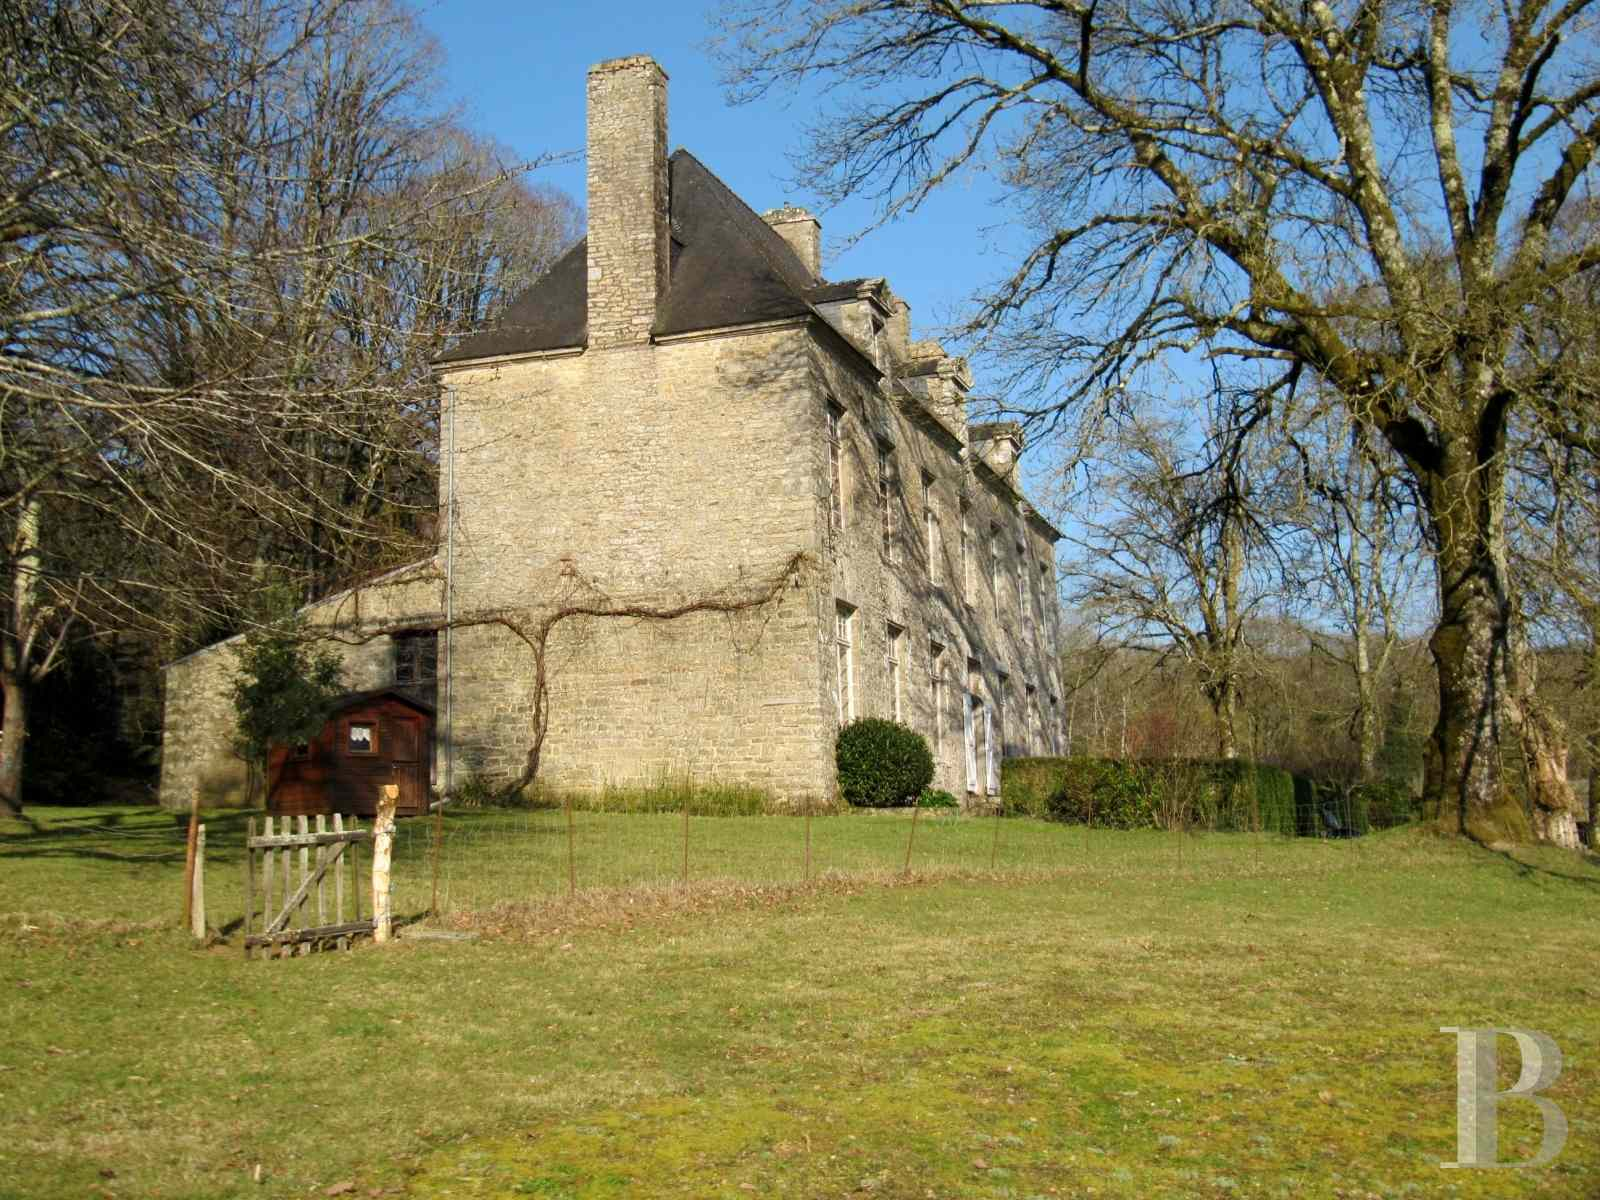 property for sale France brittany morbihan abbey - 4 zoom